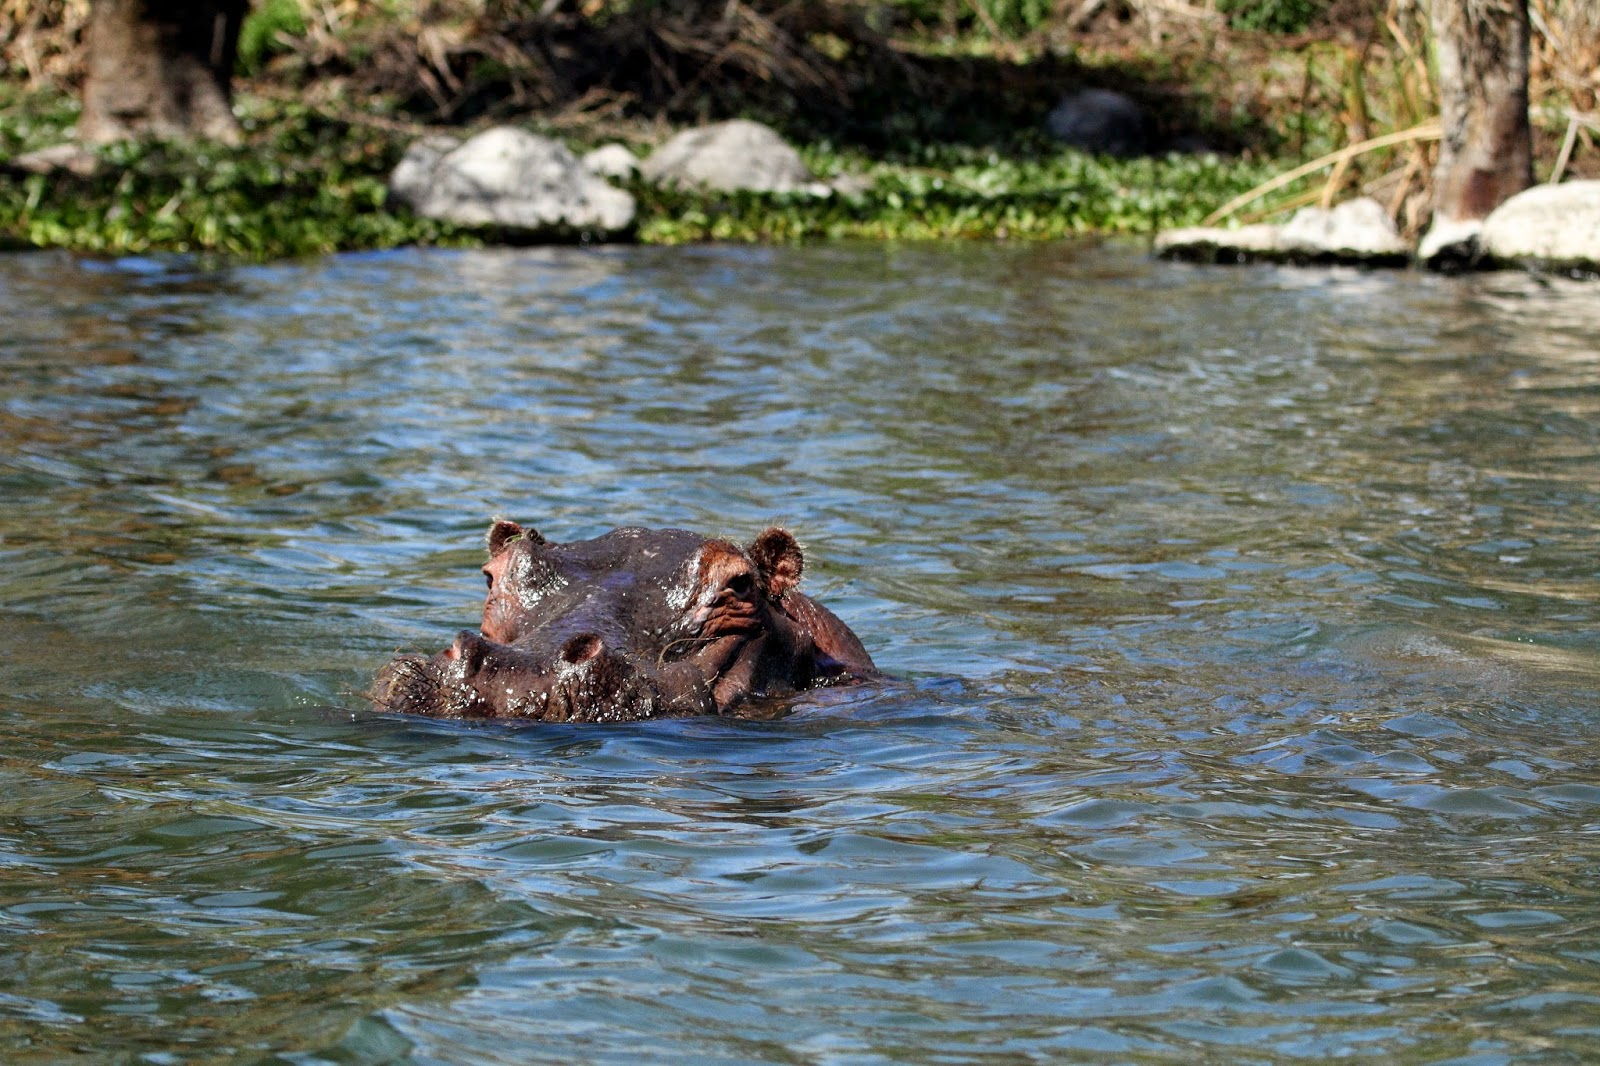 Hippopotamus at Lake Naivasha National Park